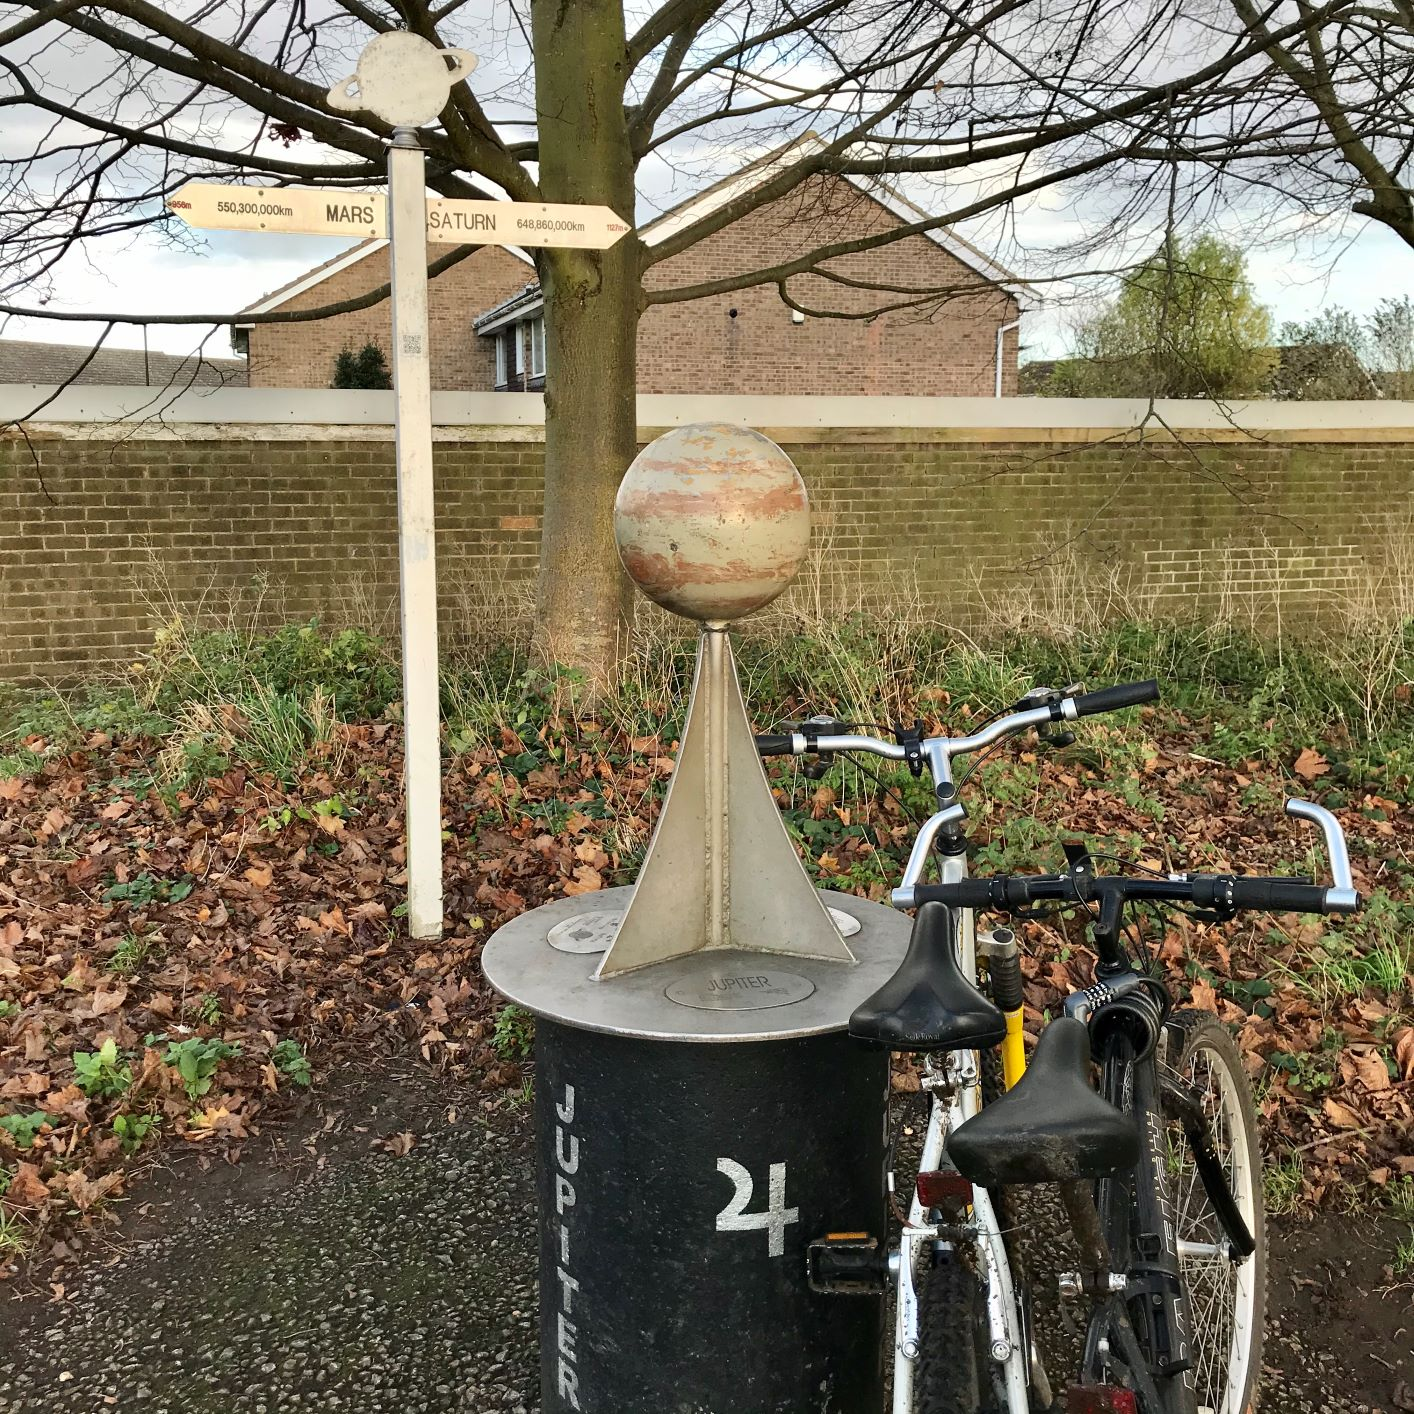 Jupiter on the solar system cycle route near York